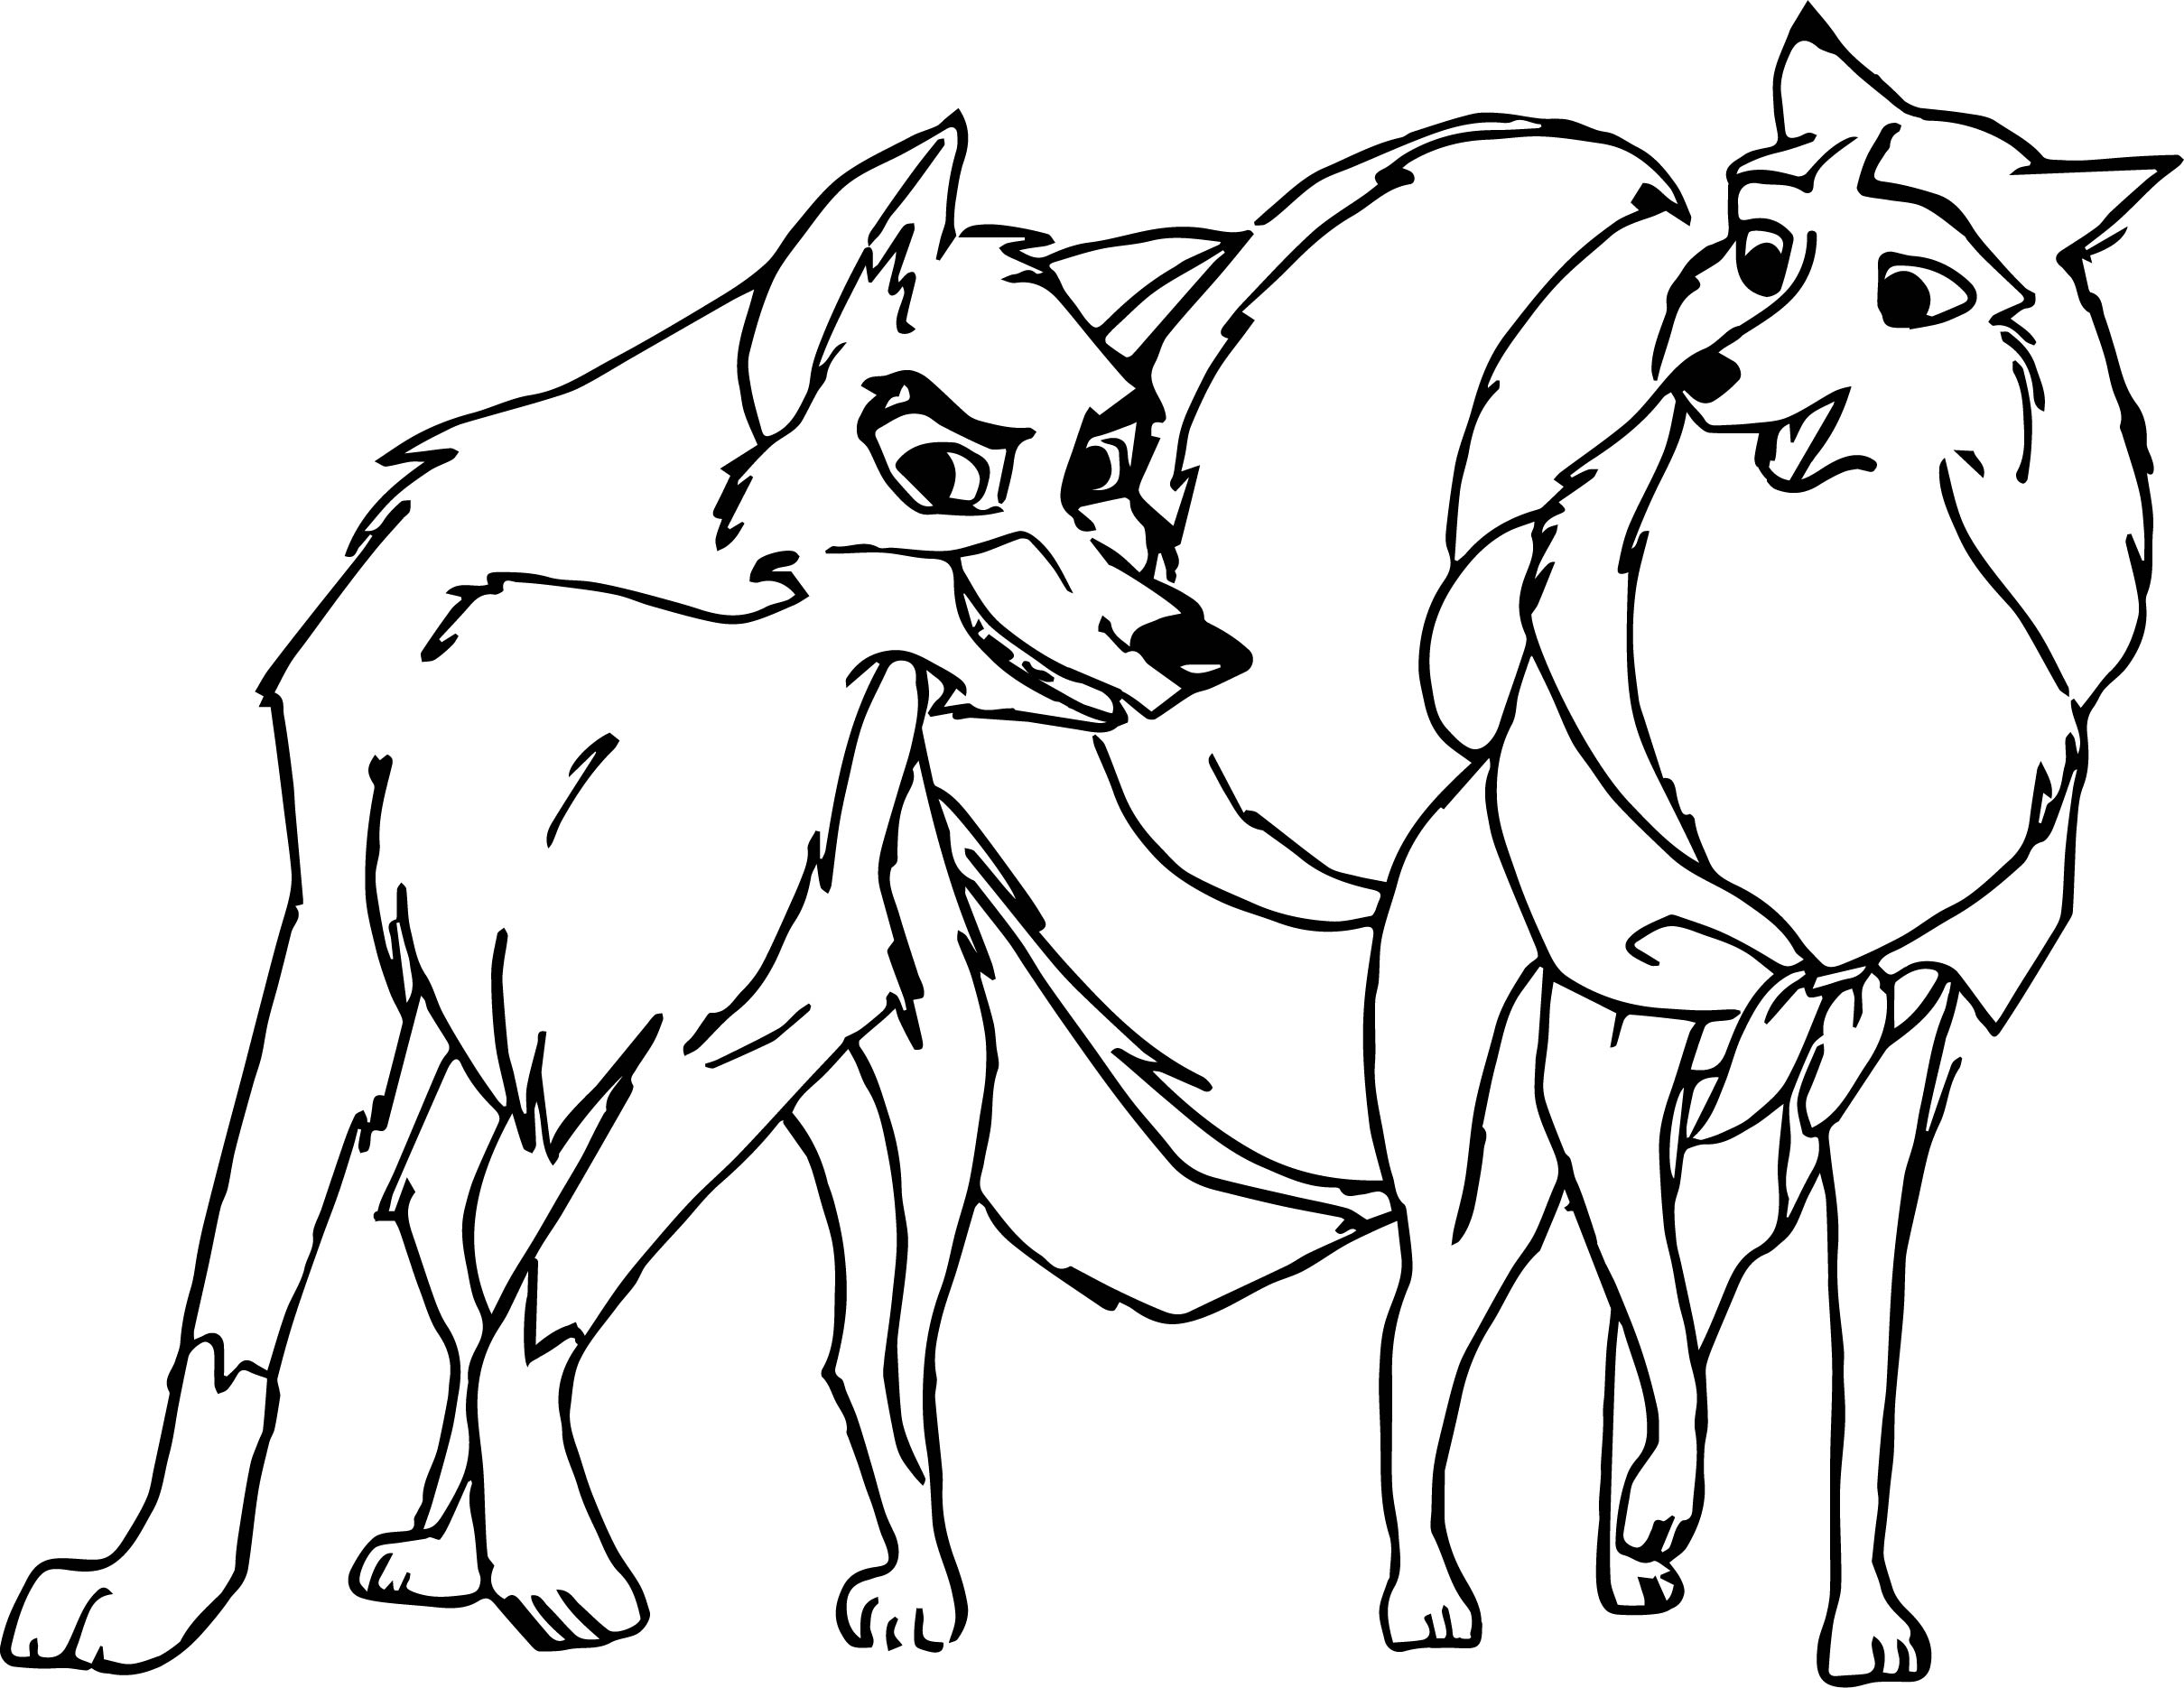 Balto And Jenna Together Coloring Pages | Wecoloringpage.com